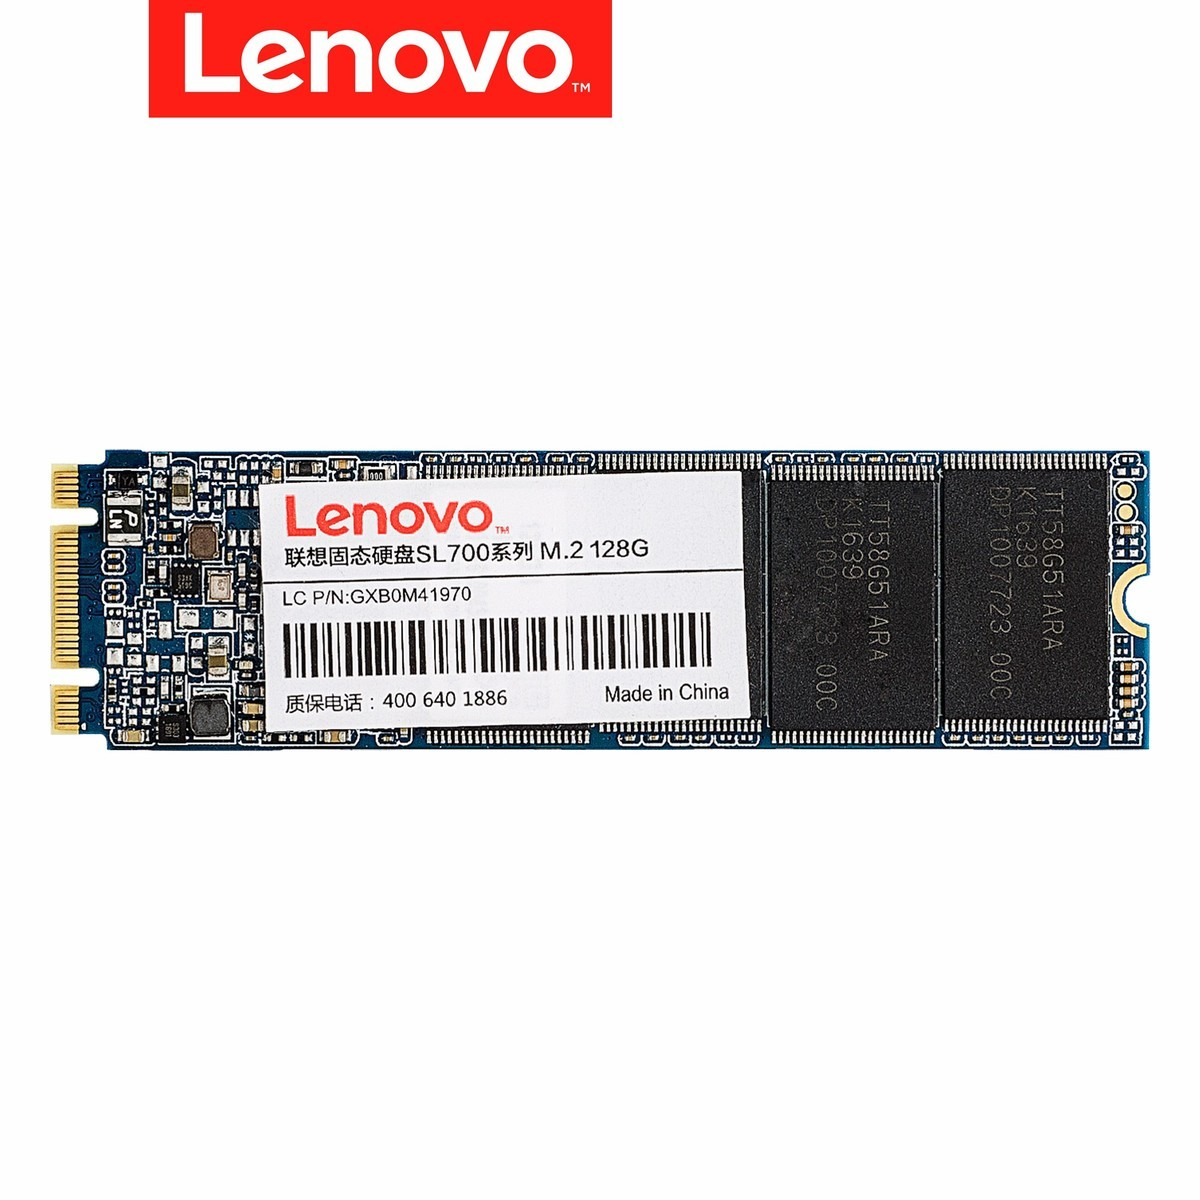 Original Lenovo SL700 M.2 NGFF 2280 128GB 256GB Internal solid State Drive upgrade for Gamer SSD High quality 3 Years warranty all 2 in 1 msata to sata ngff m 2 to sata iii sata3 converter adapter support msata m 2 ngff ssd solid state disk for desktop